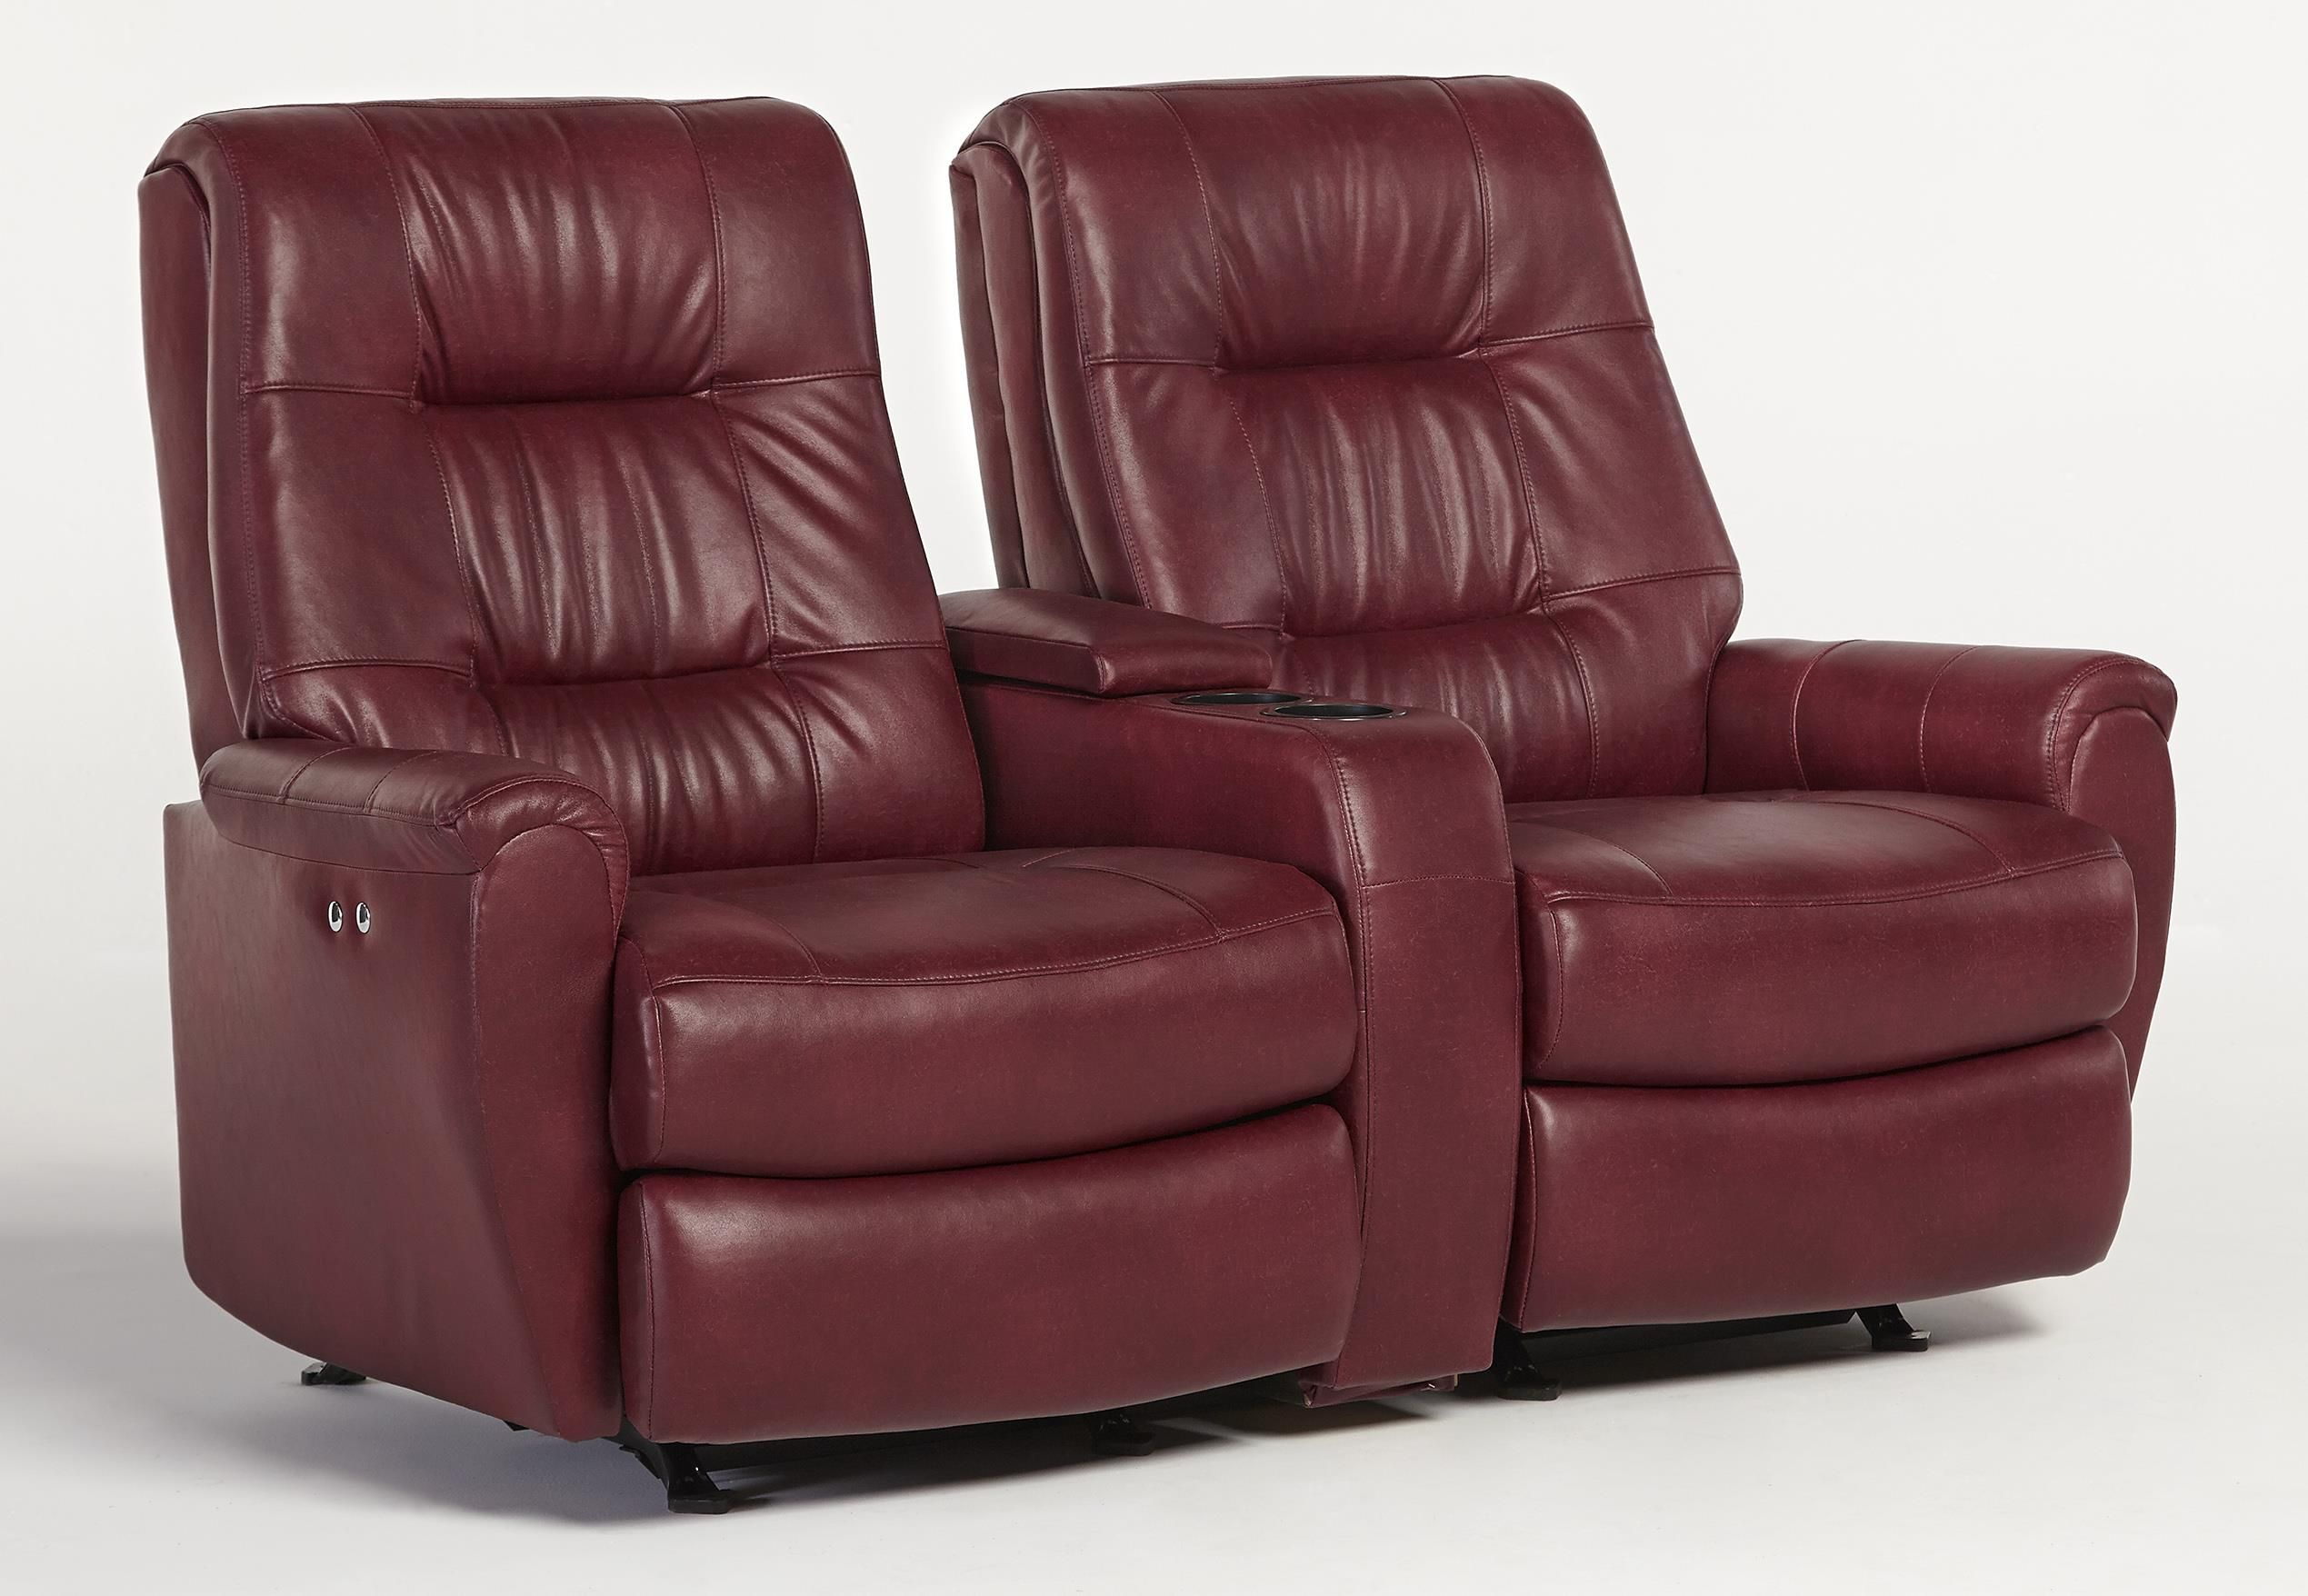 Recliner Loveseats For Small Spaces Small Scale Reclining Space